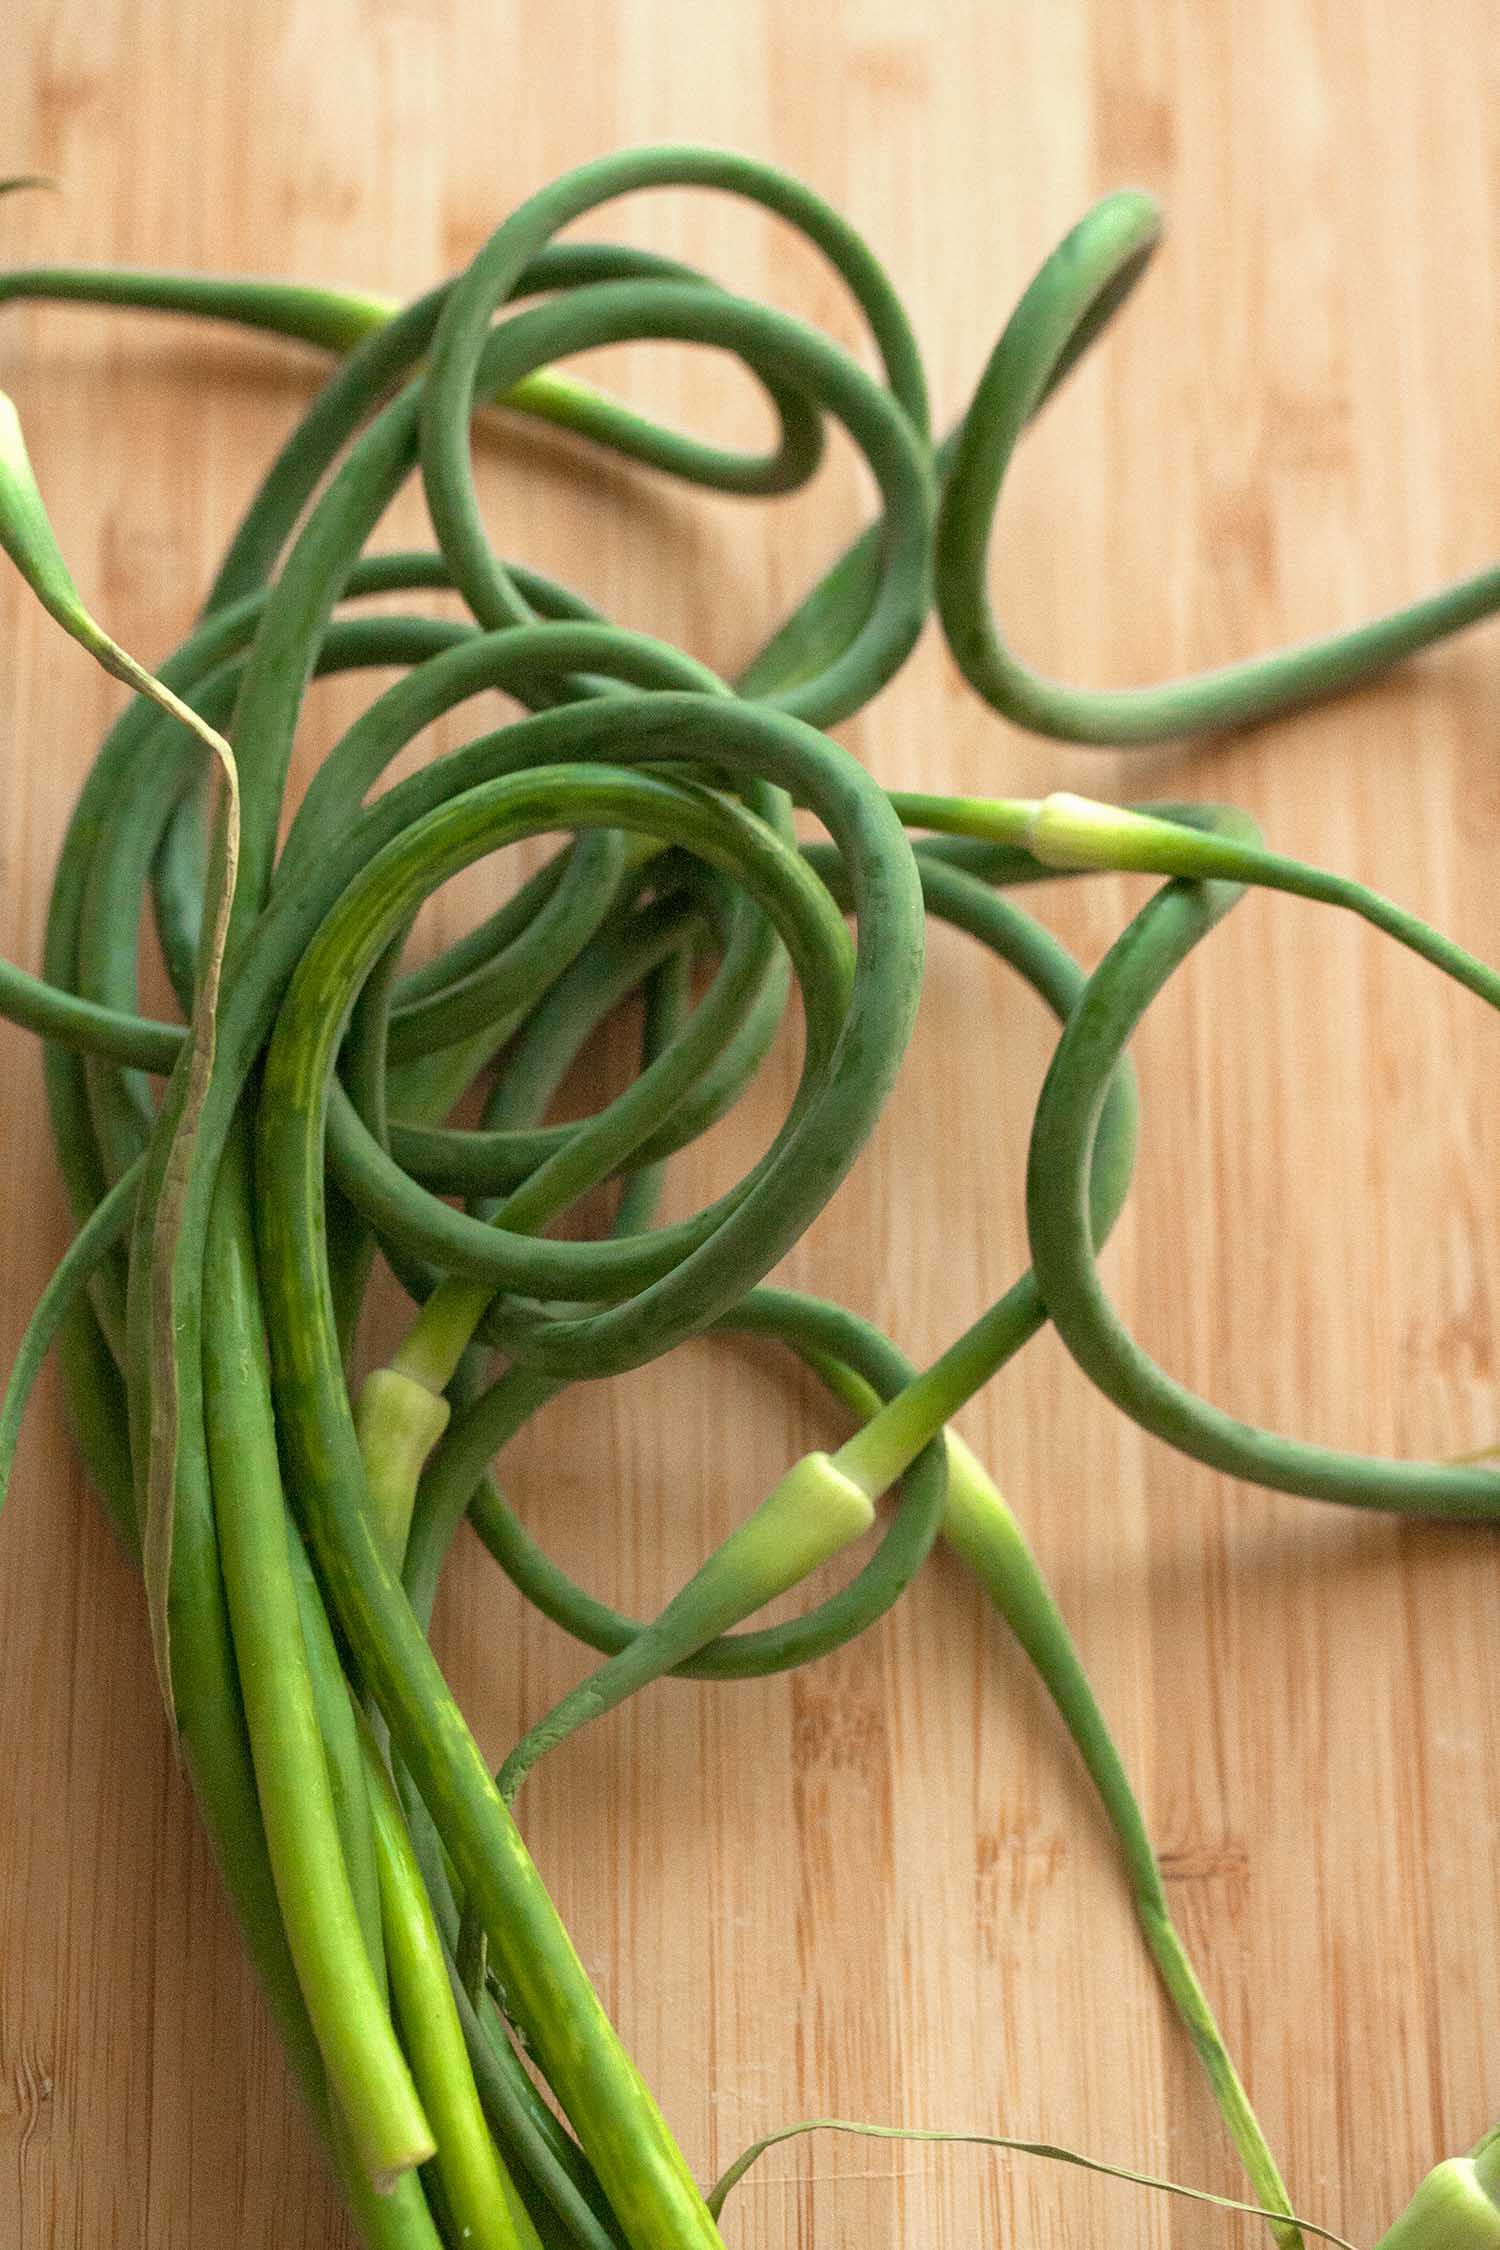 Bunch of garlic scapes on a table